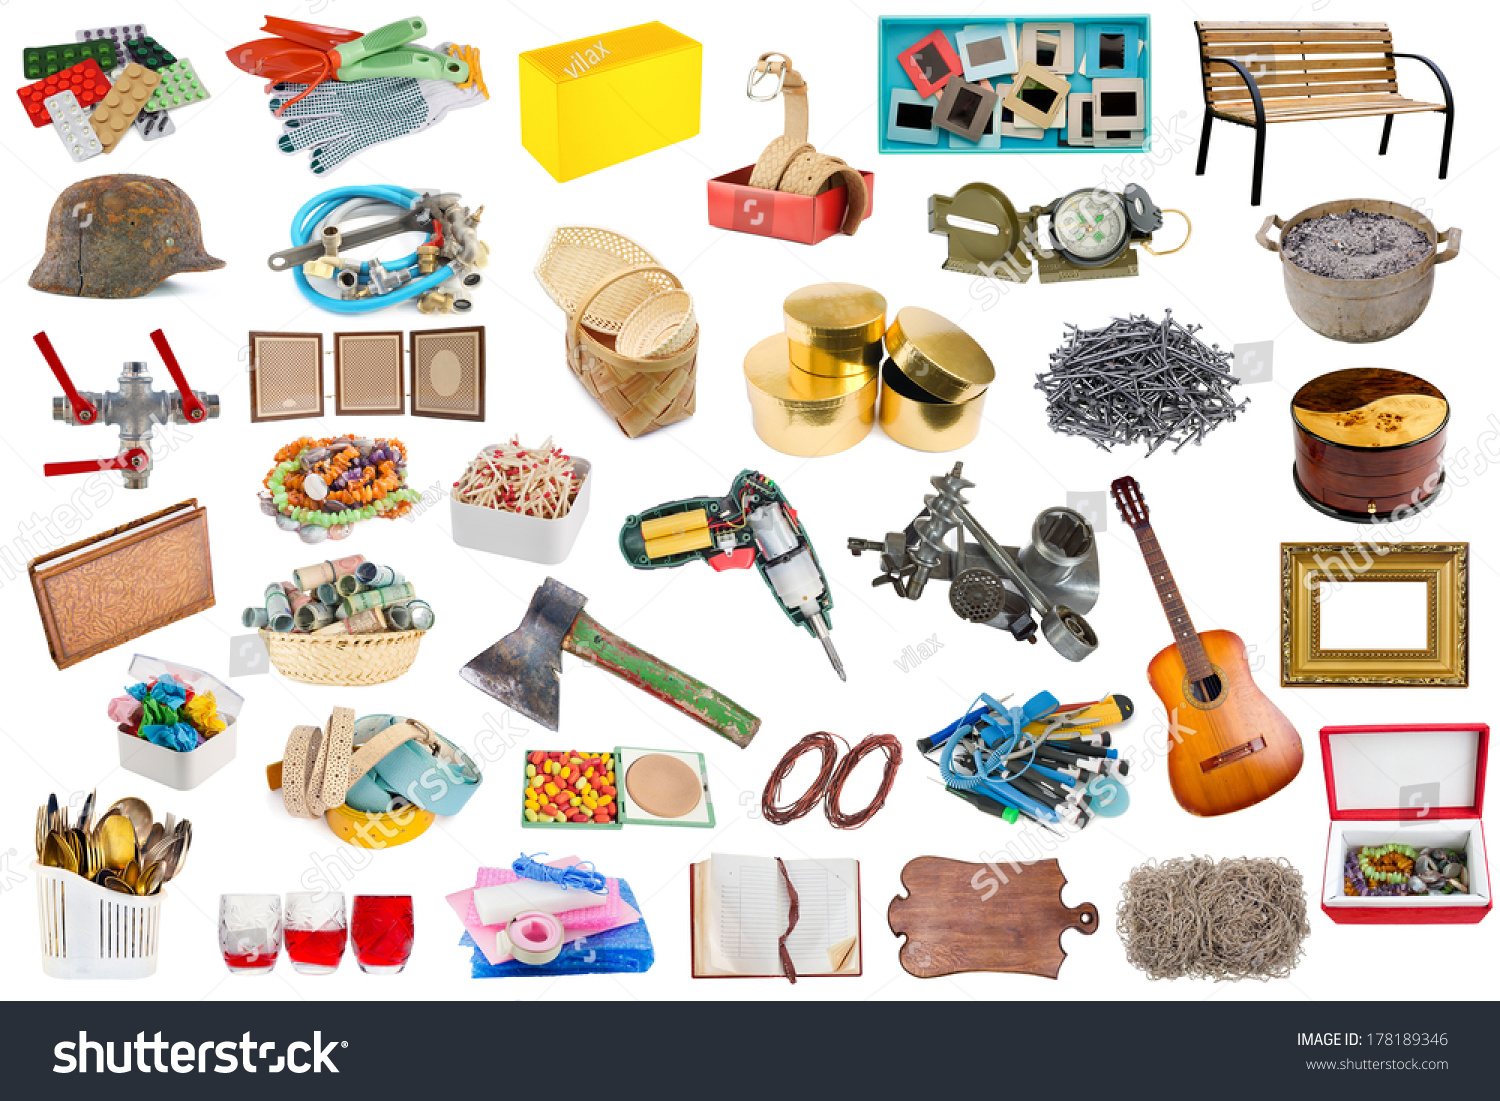 Simple common household objects tools isolated stock photo for Minimalist household items